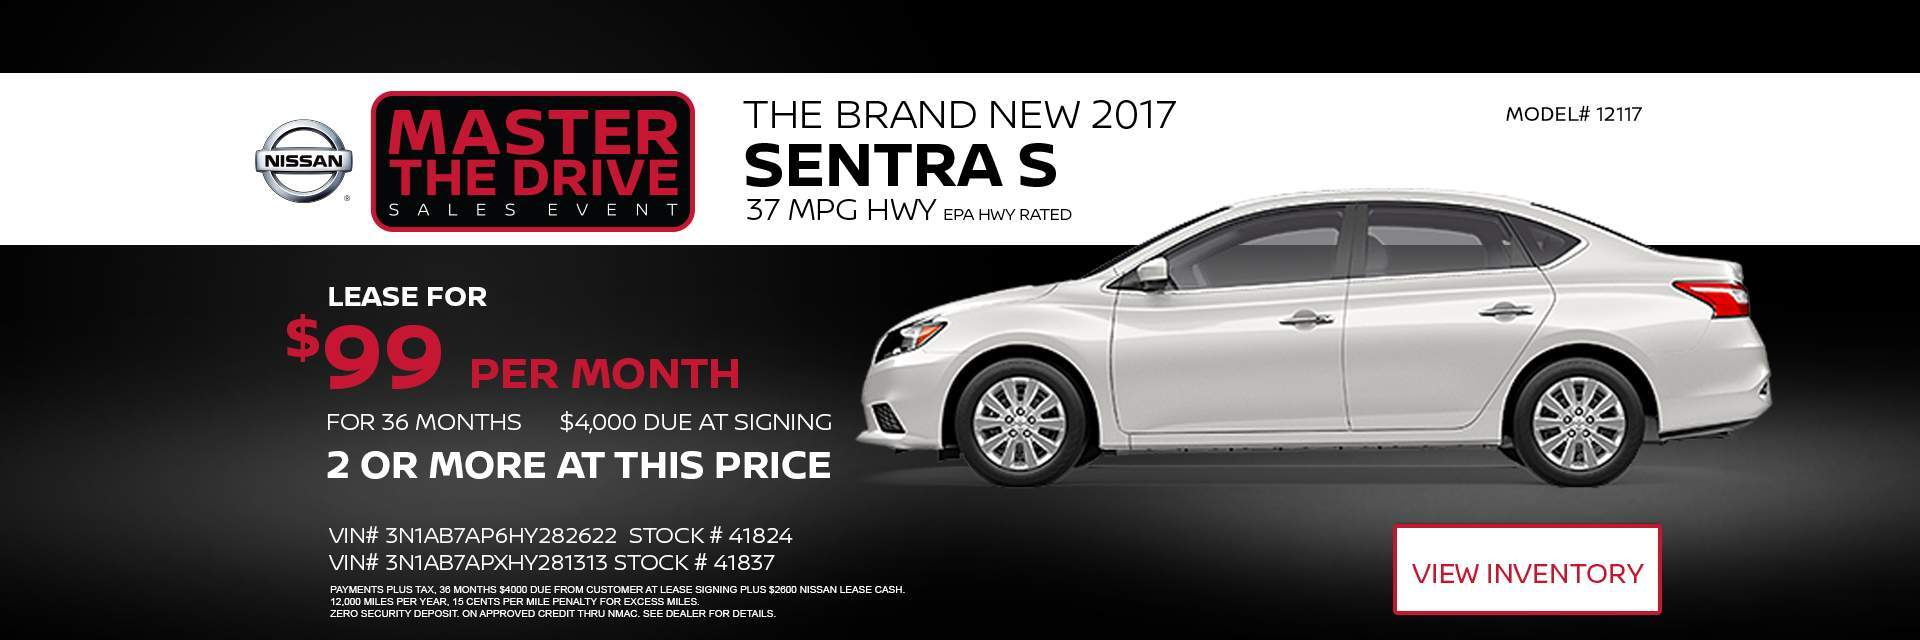 Master the Drive sales event 2017 Sentra S